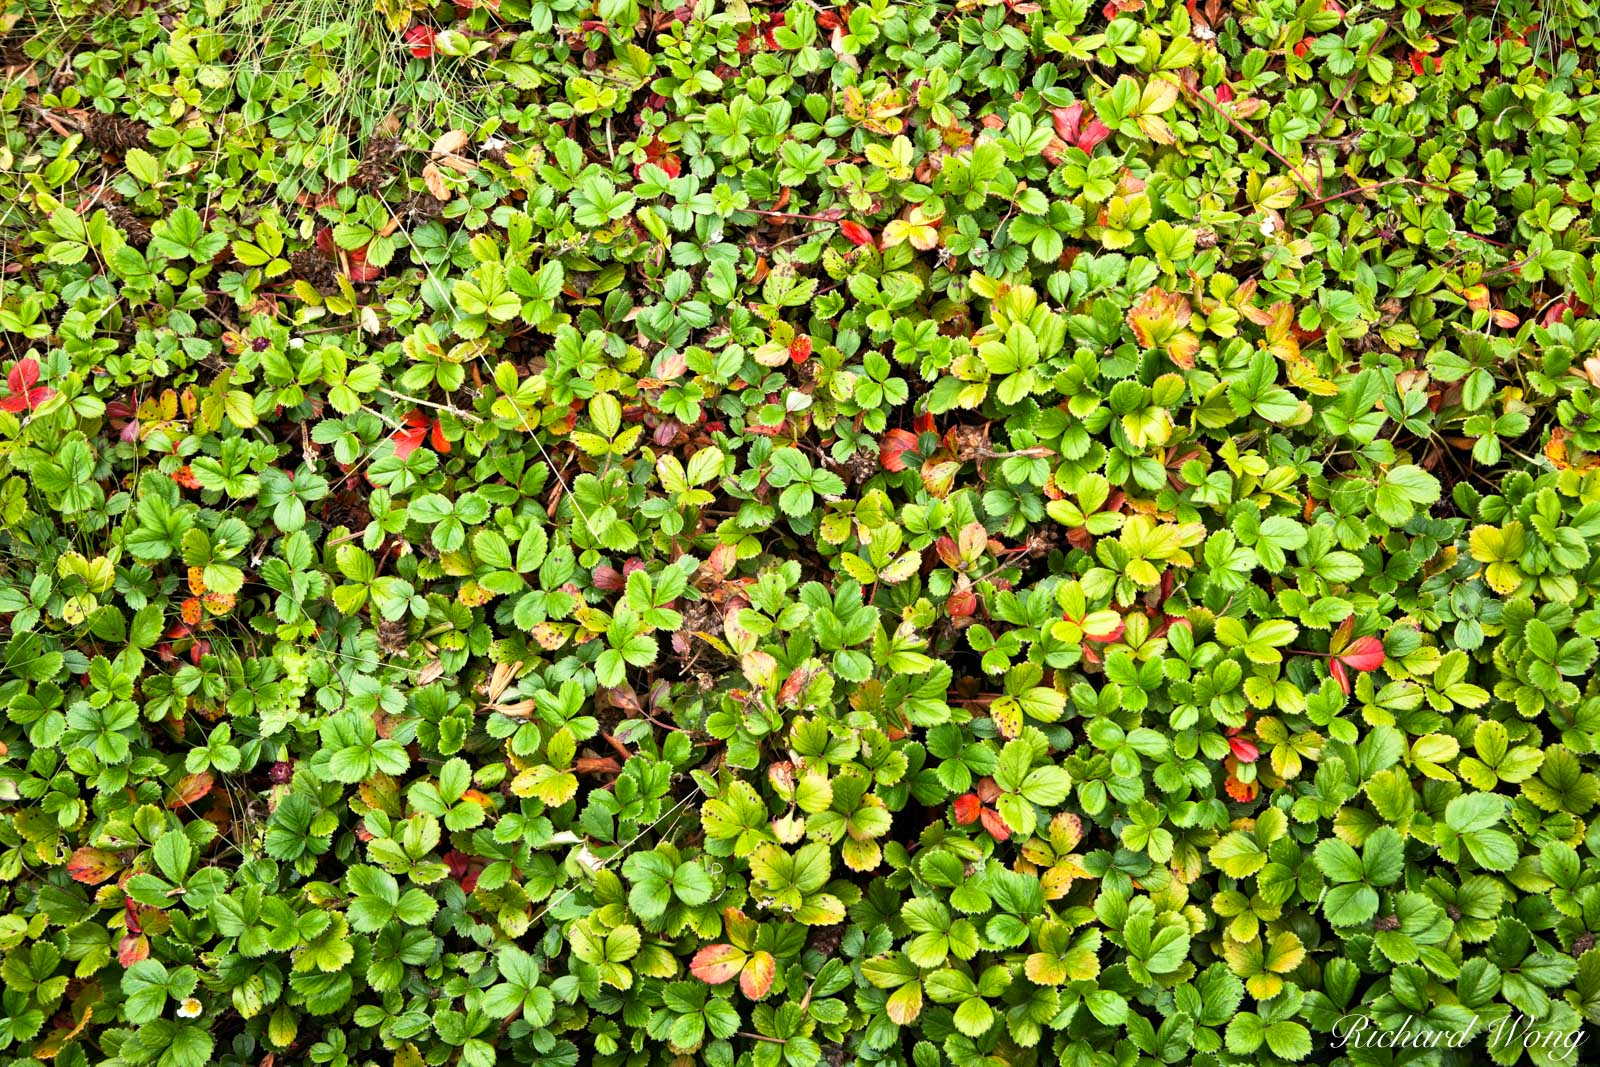 Green Roof Vegetation on California Academy of Sciences Building / Golden Gate Park, San Francisco, California, photo, photo